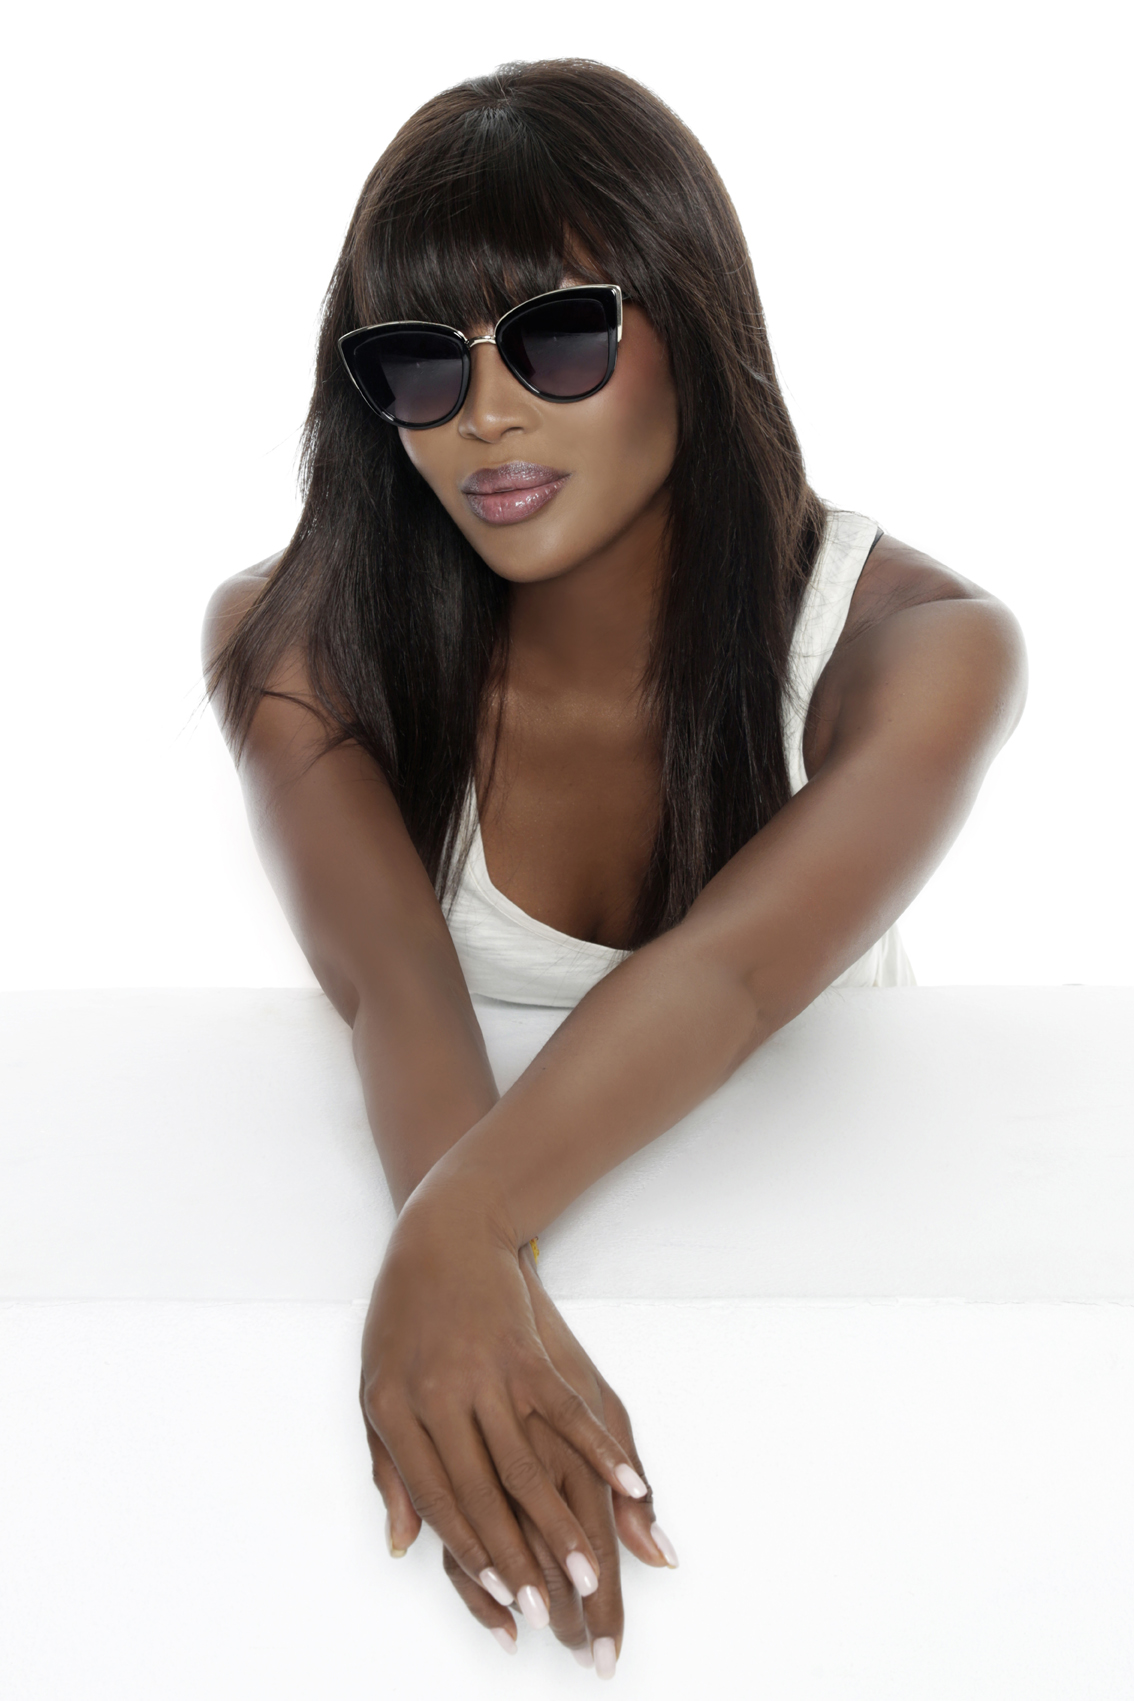 Naomi Campbell launches her own beauty and fashion brand